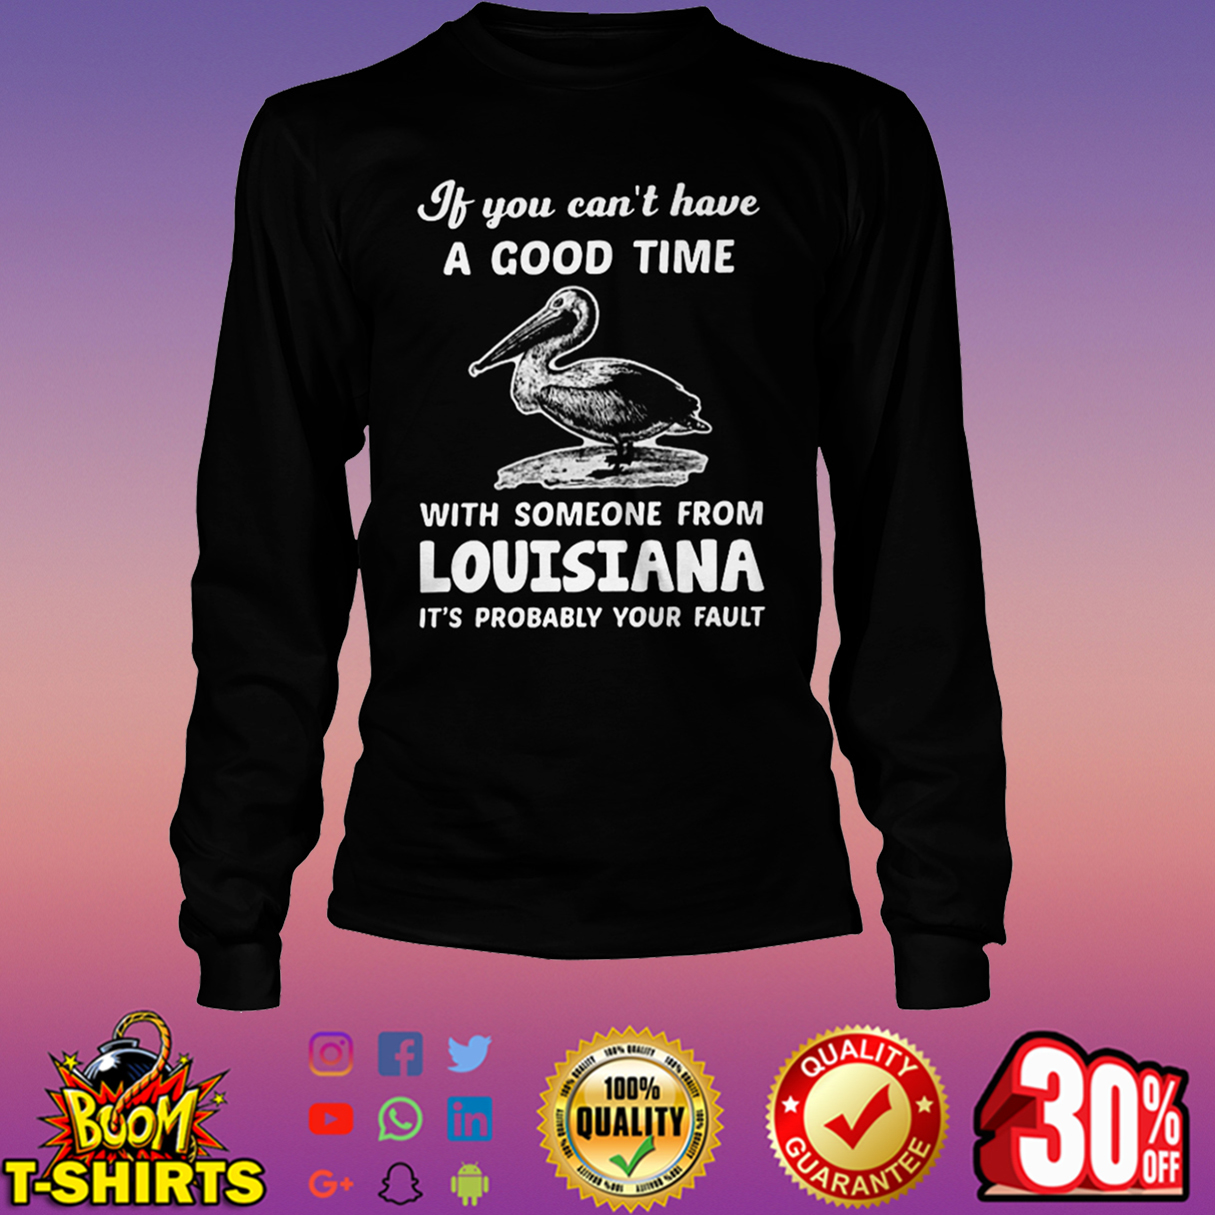 If you can't have a good time with someone from Louisiana it's probably your fault long sleeve tee